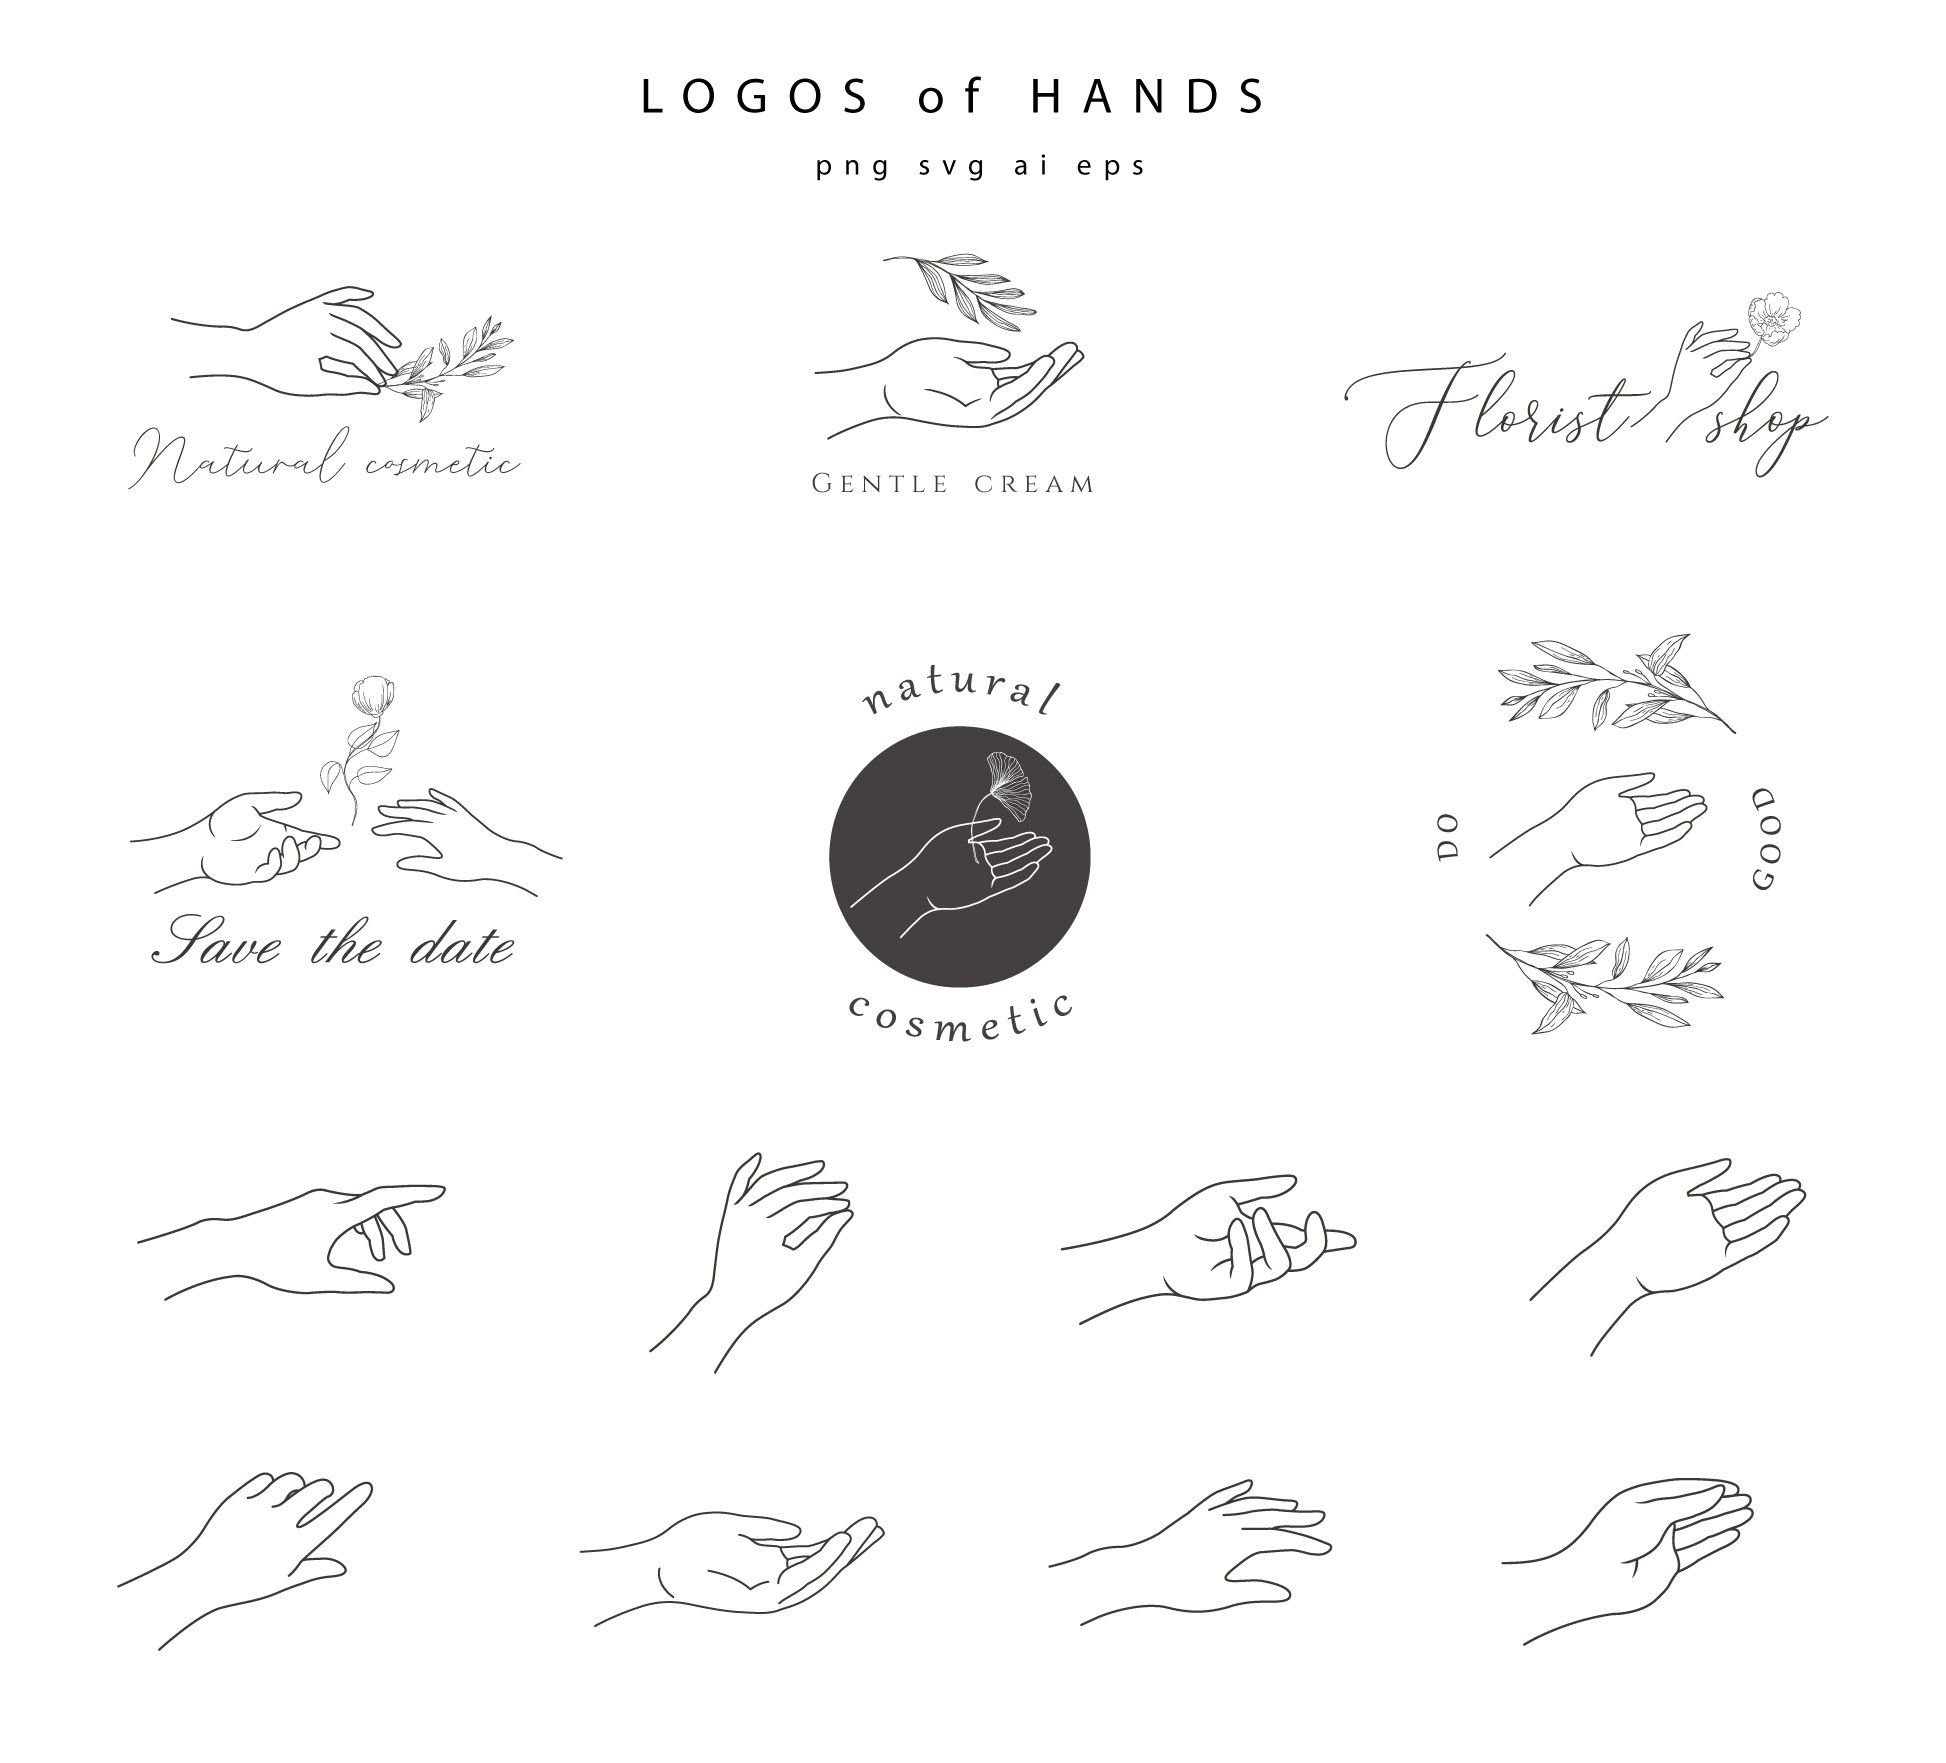 Hand Logo Hands Clipart Hand Drawn Botanical Floral Leaf